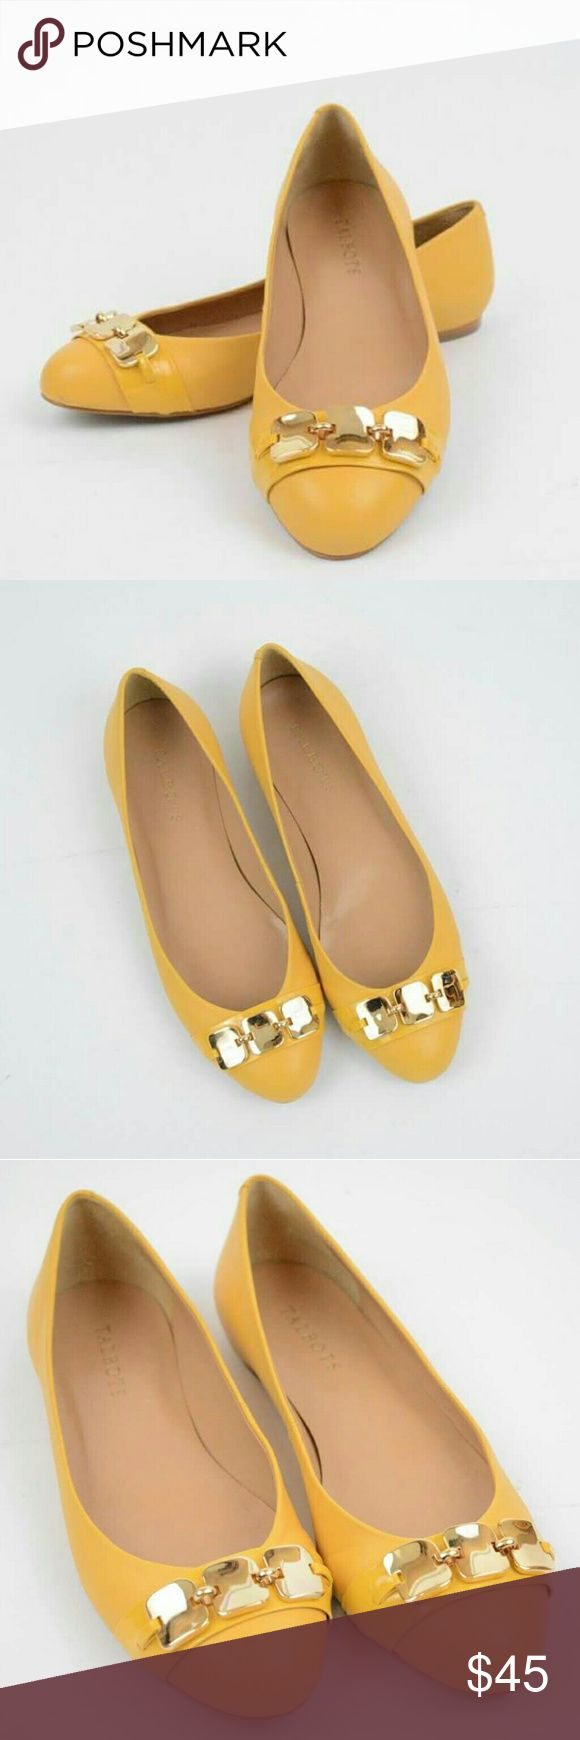 Talbots Flats - Yellow/Mustard Colored - S. 7 1/2 Talbots Yellow/Mustard Colored Flats. Size 7 1/2. These flats are absolutely beautiful and still are in great working condition! The insides of the shoes are clean and show little to no signs of use, however the bottom of these flats do show some signs of use. Theses flats are gorgeous and go well with so much! Please note, these are not stock photos, I take all my photos of the item I am selling. Please comment with any questions!! Thank you…